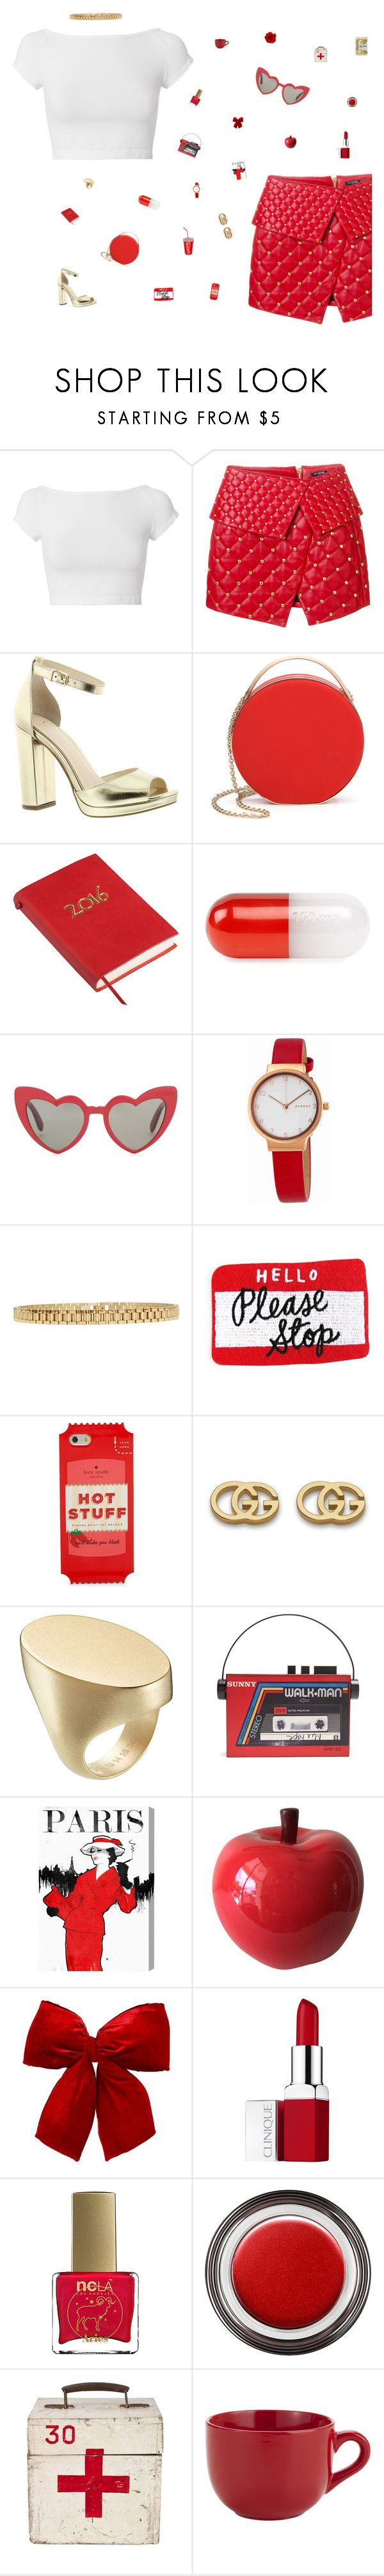 """oh look what you made me do"" by loasanchez ❤ liked on Polyvore featuring Helmut Lang, Balmain, Jessica Simpson, Eddie Borgo, Jonathan Adler, Yves Saint Laurent, Skagen, AMBUSH, Kate Spade and Gucci"